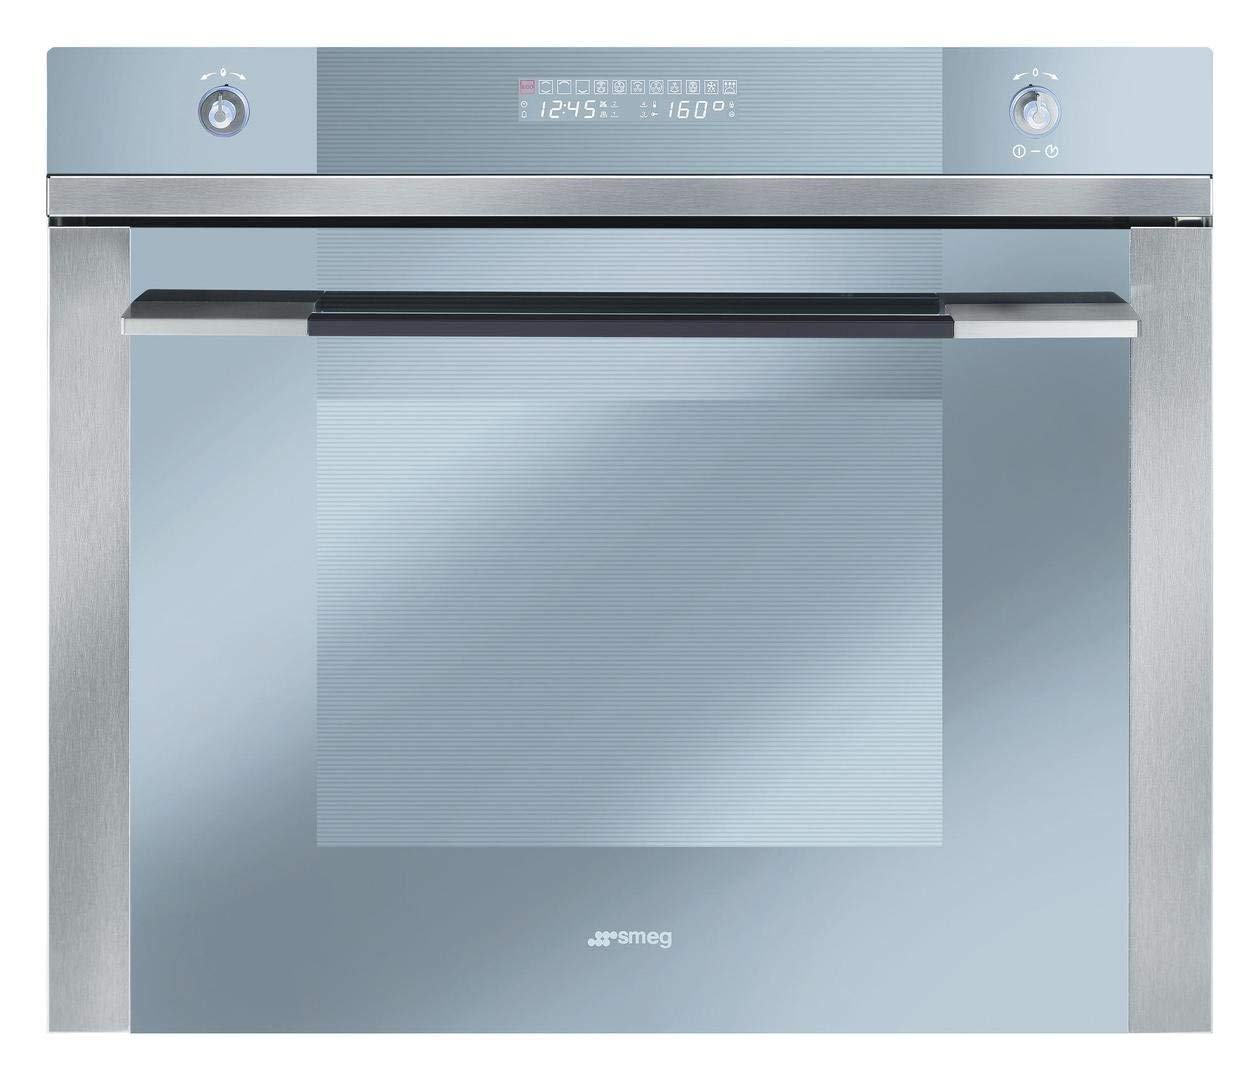 Linea 27-Inch Wall Oven